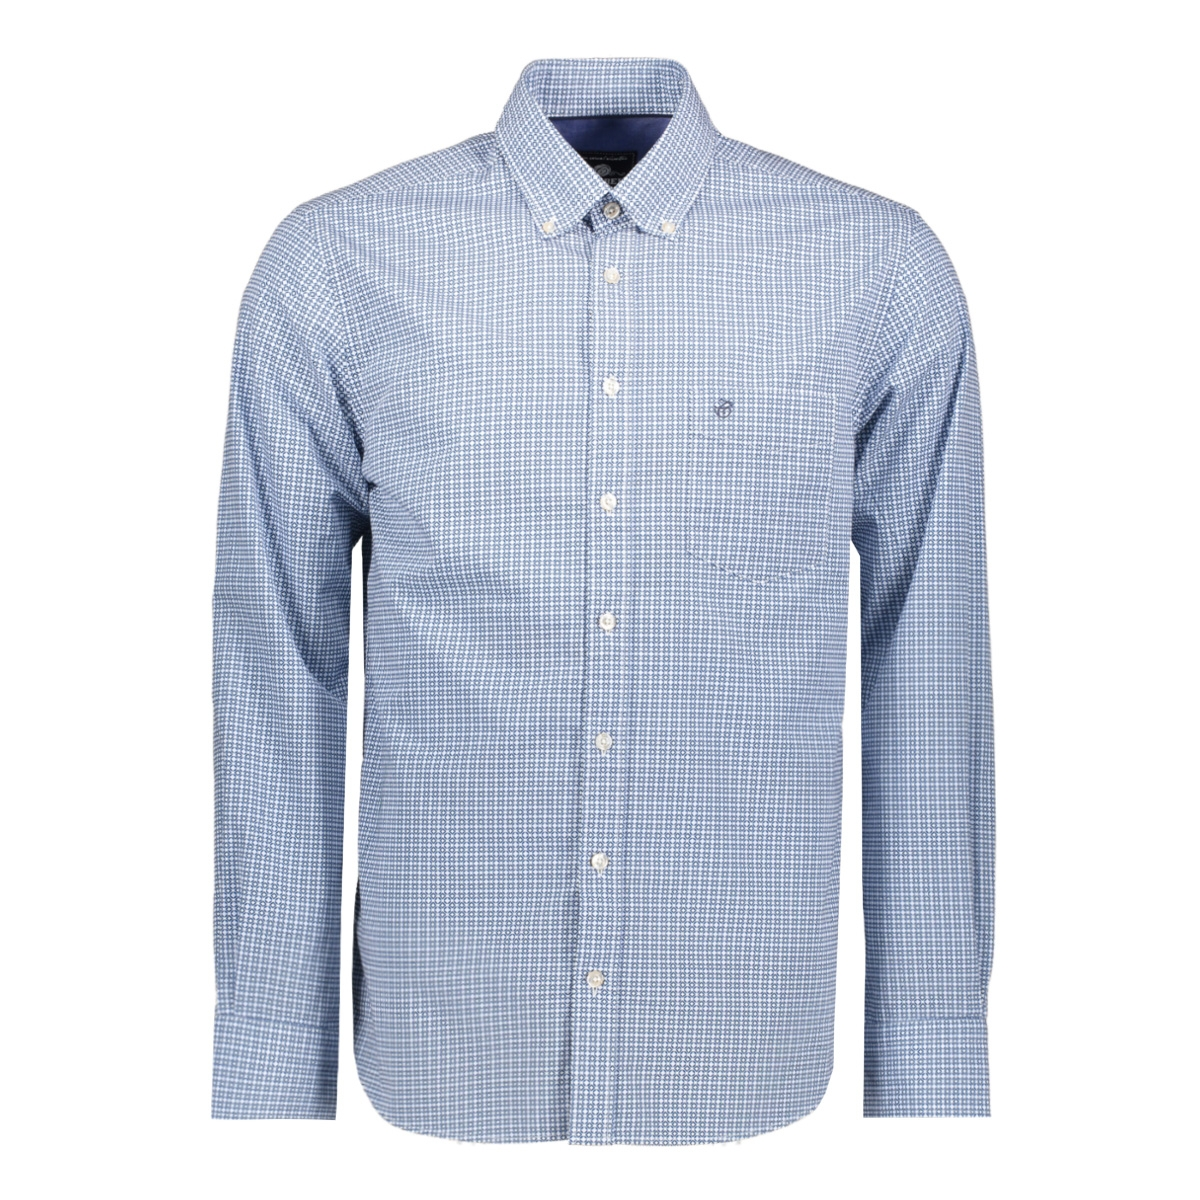 casual overhemd lm 052881 campbell overhemd 308 blauw print